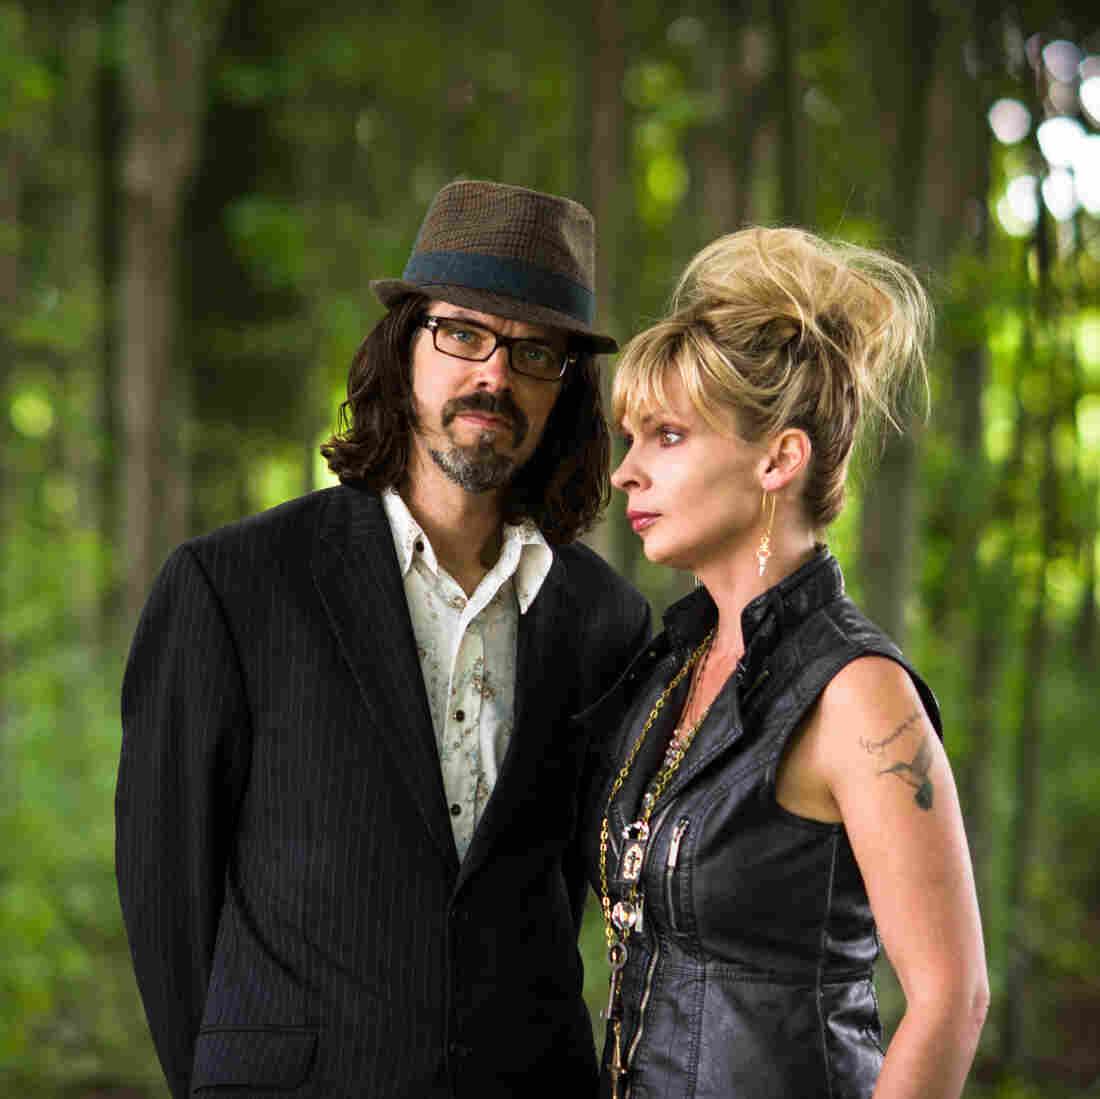 Over the Rhine is the married duo of Linford Detweiler and Karin Bergquist. The pair's new double album, Meet Me at the Edge of the World, is its 15th studio release.